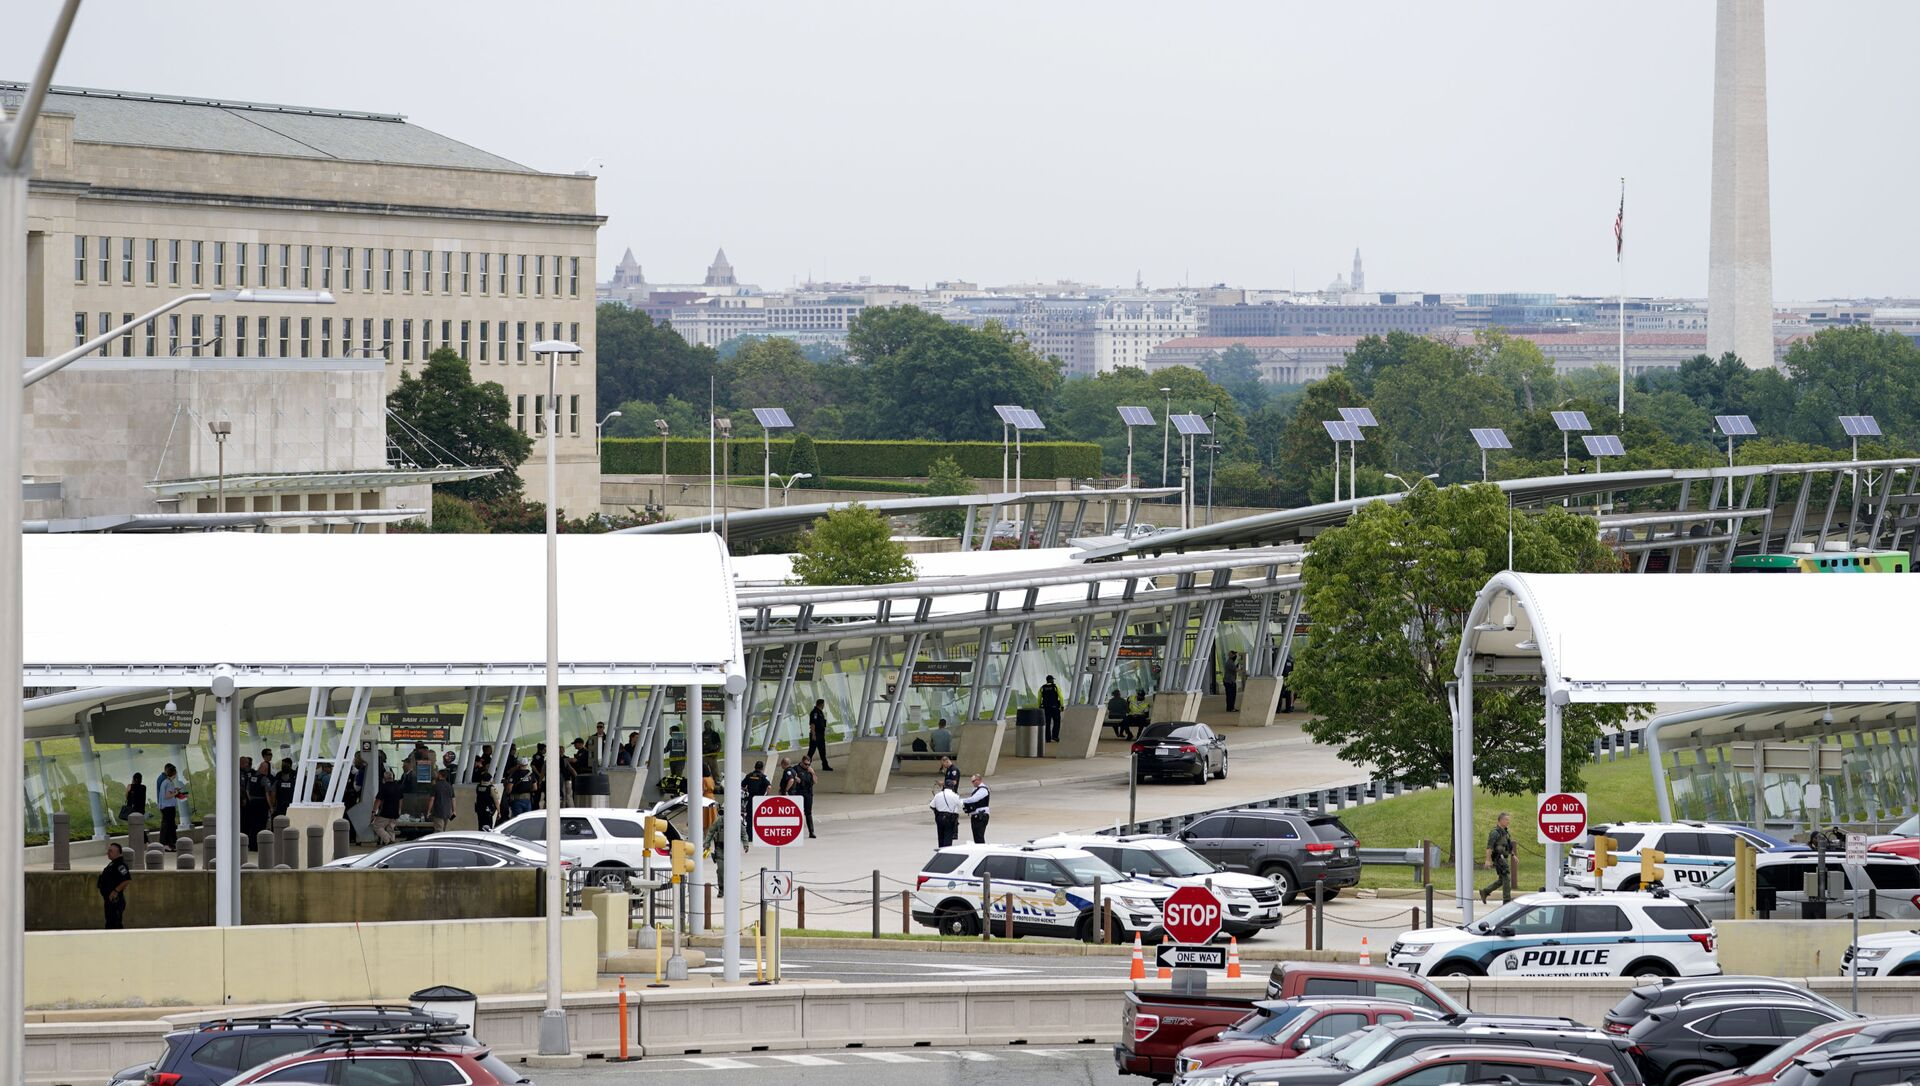 With the Washington Monument in the background, police vehicles are seen outside the Pentagon Metro area Tuesday, Aug. 3, 2021, at the Pentagon in Washington. The Pentagon is on lockdown after multiple gunshots were fired near a platform by the facility's Metro station. - Sputnik International, 1920, 04.08.2021